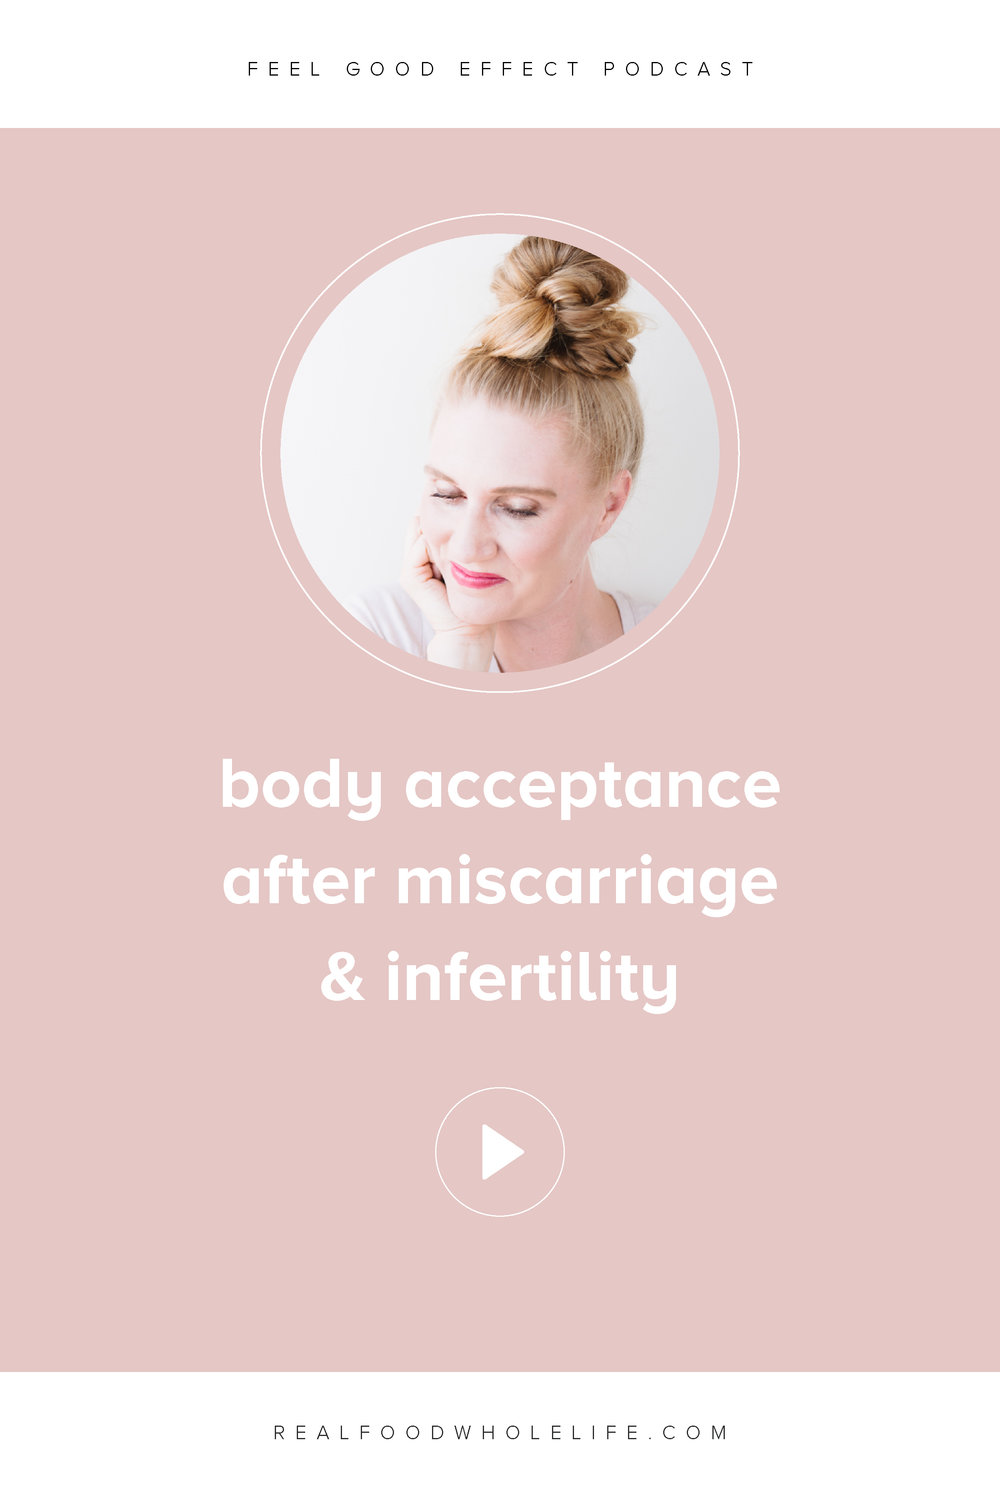 Miscarriage and infertility can complicate the relationship we have with our bodies. This episode of the Feel Good Effect is all about how to love your body after experiencing miscarriage or infertility with some tactical things you can do to accept your body. #realfoodwholelife #feelgoodeffect #gentlewellness #healthy #wellness #podcast #gentle #gentleisthenewperfect #bodylove #bodyacceptance #infertility #miscarriage